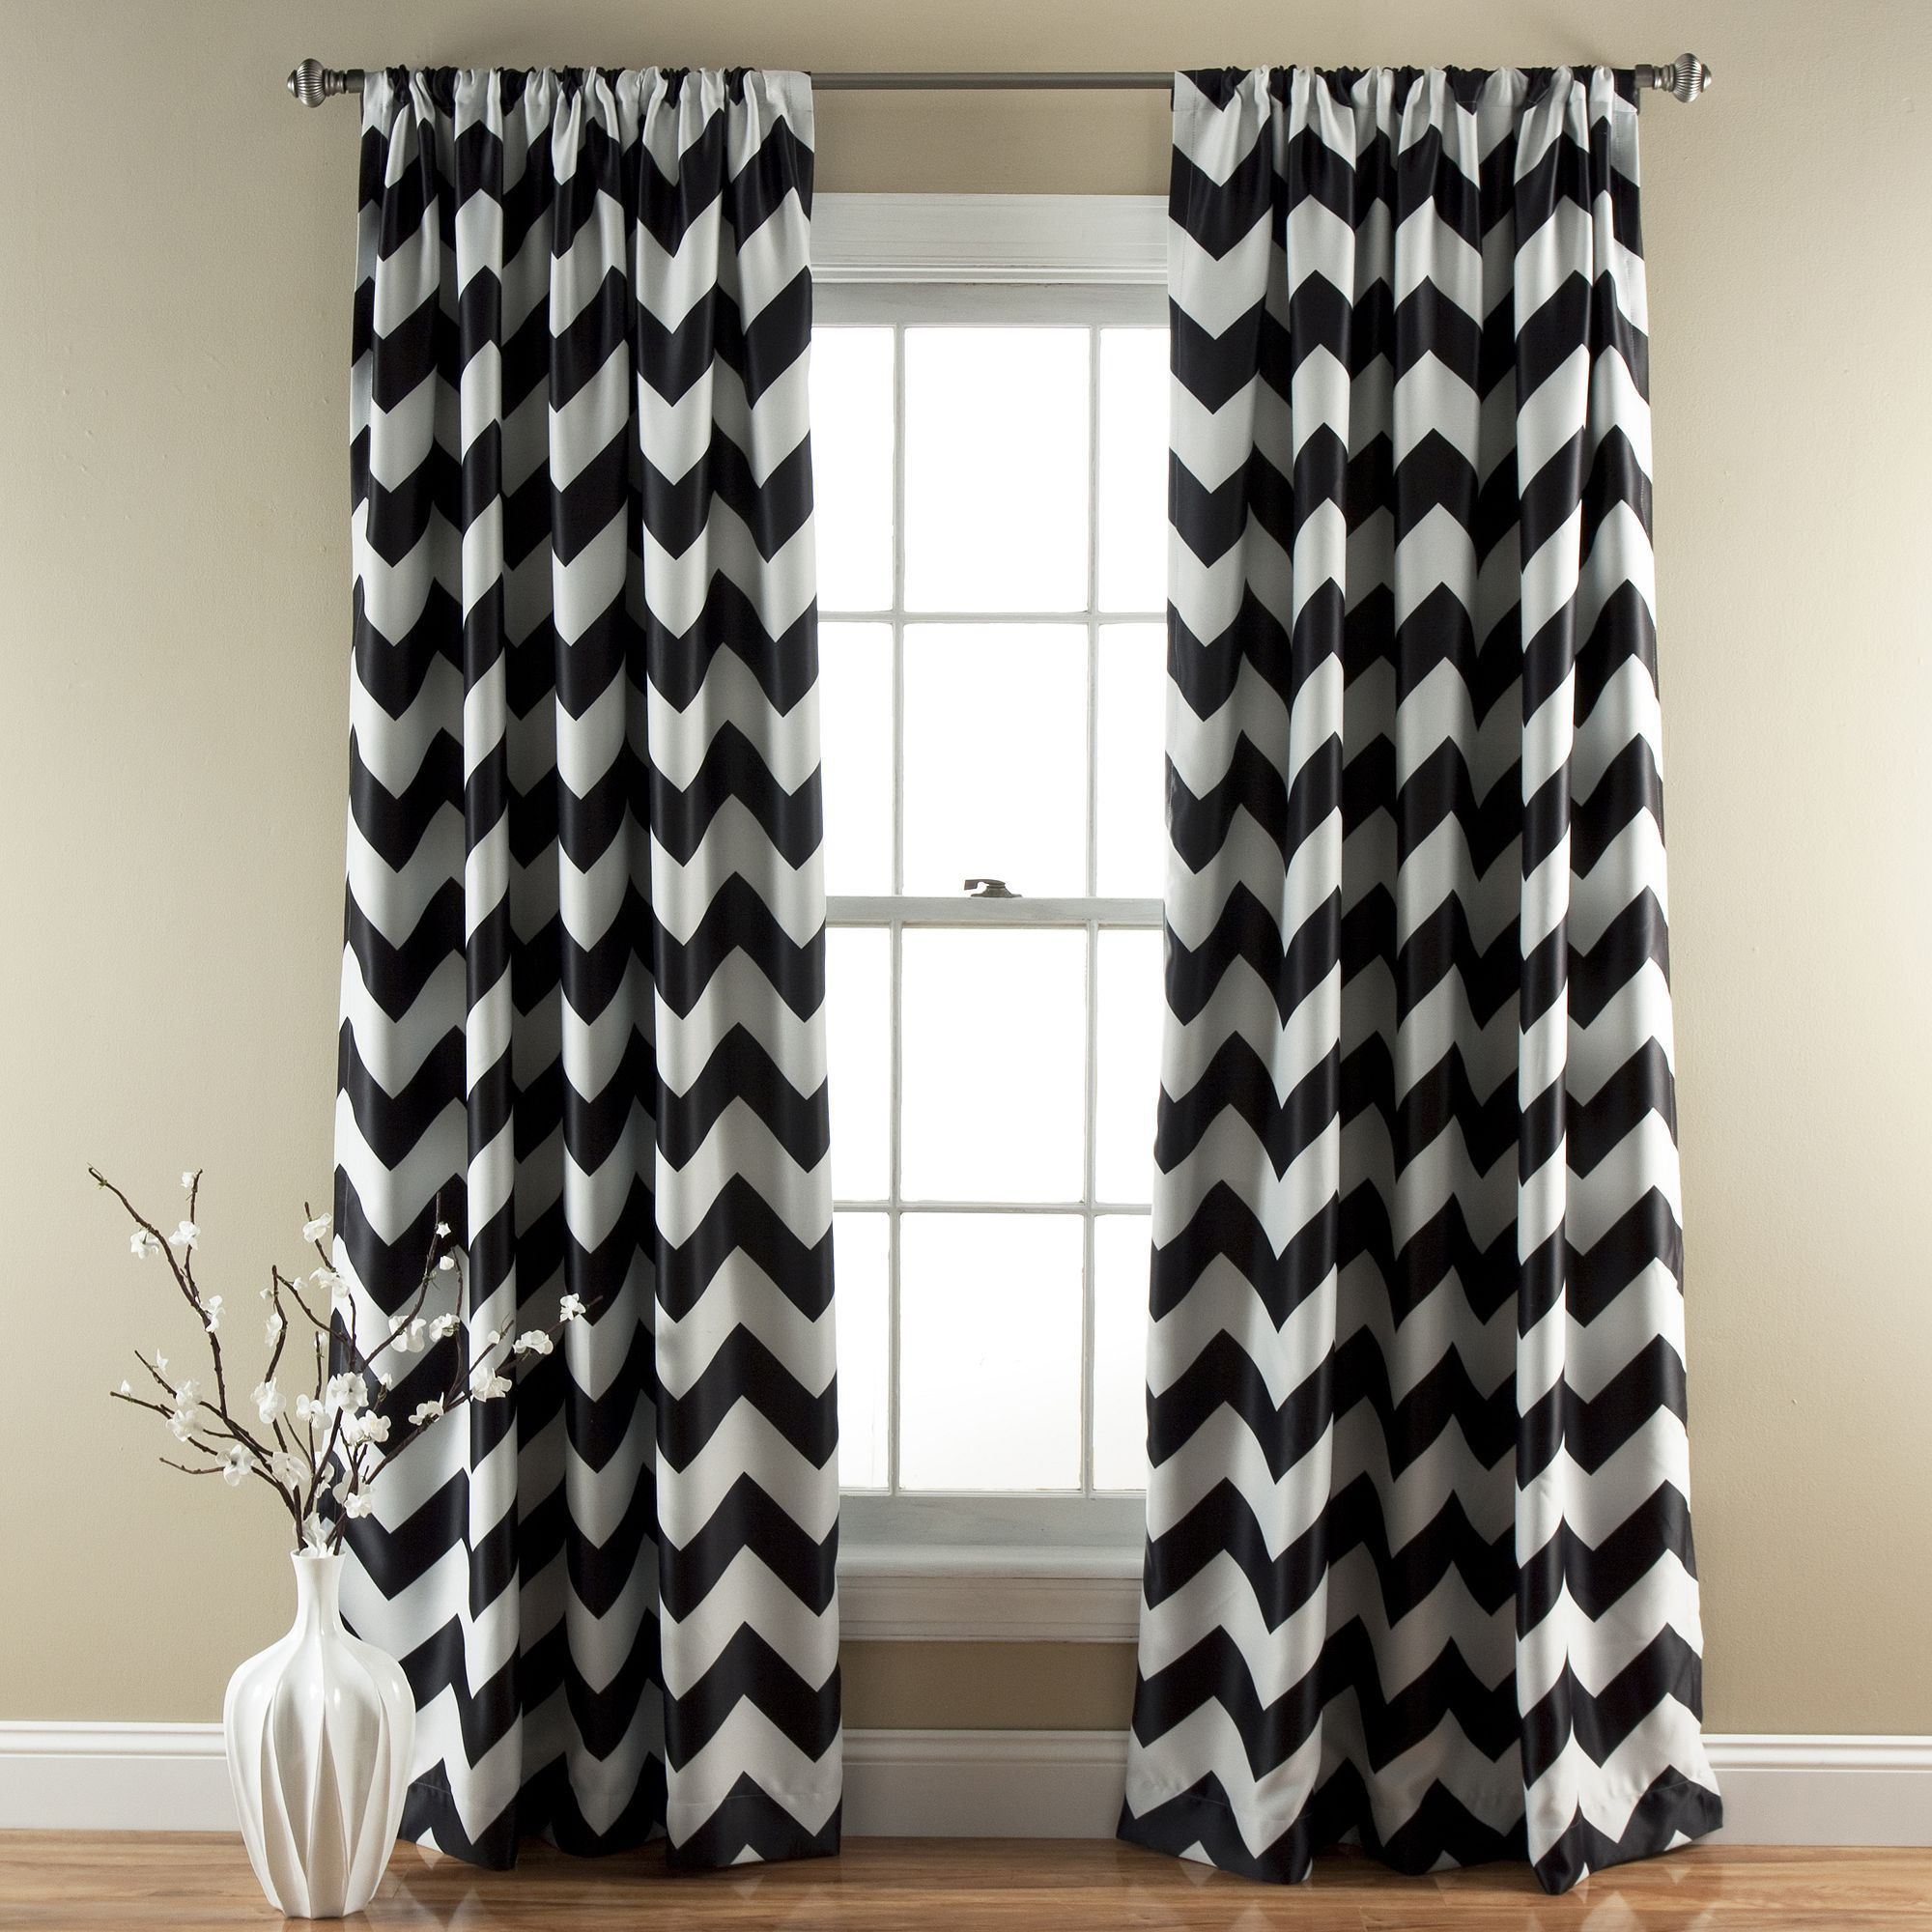 Lush Decor Chevron Blackout Window Curtain Pair  52 X